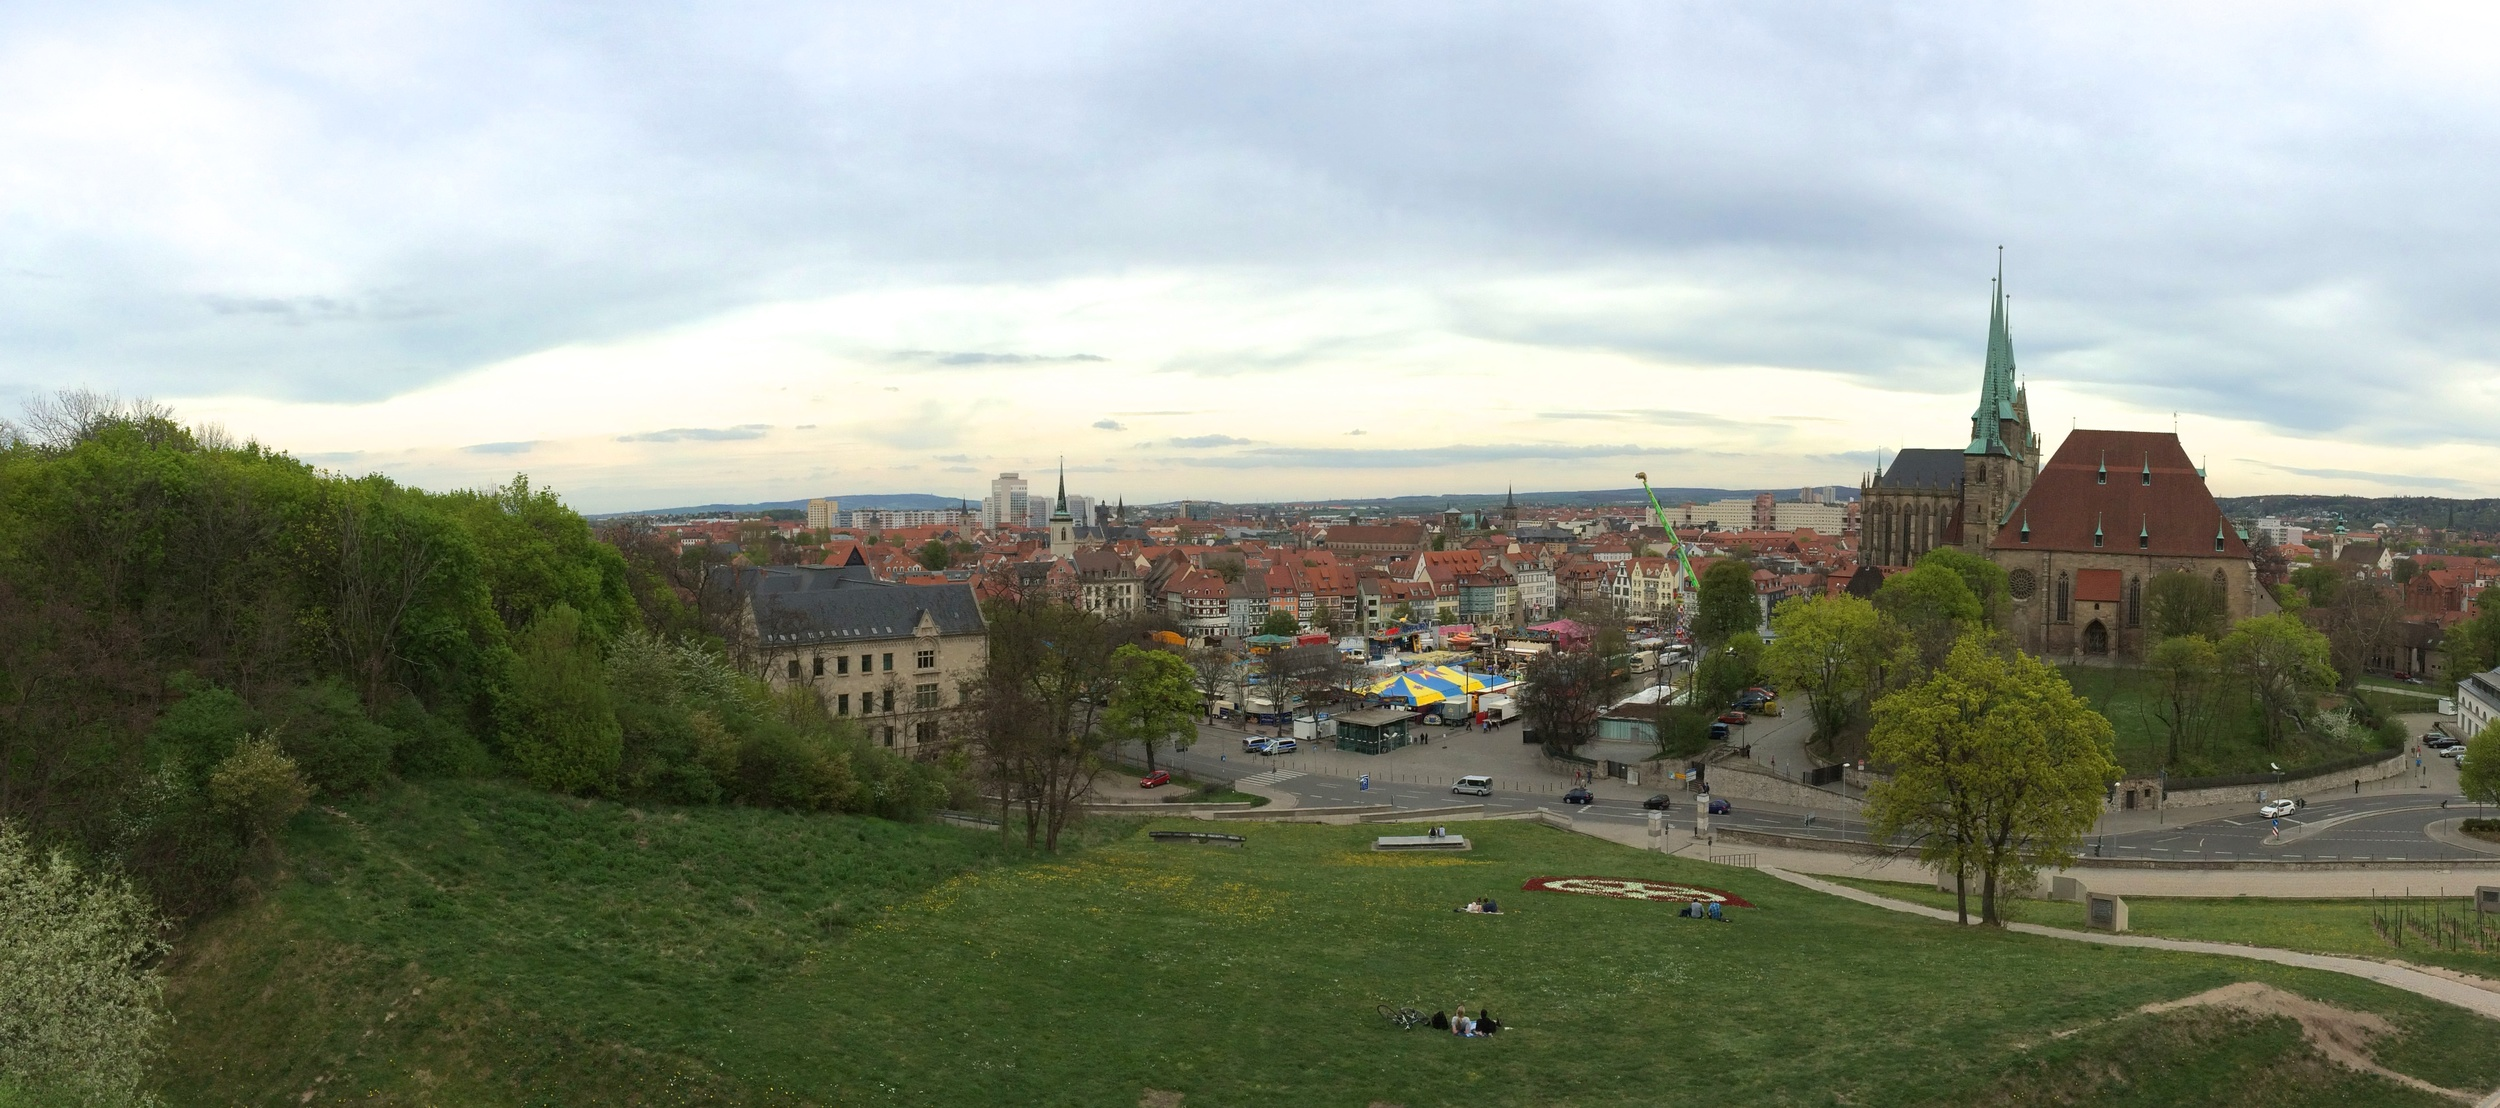 Erfurt Panoramic 3.jpg